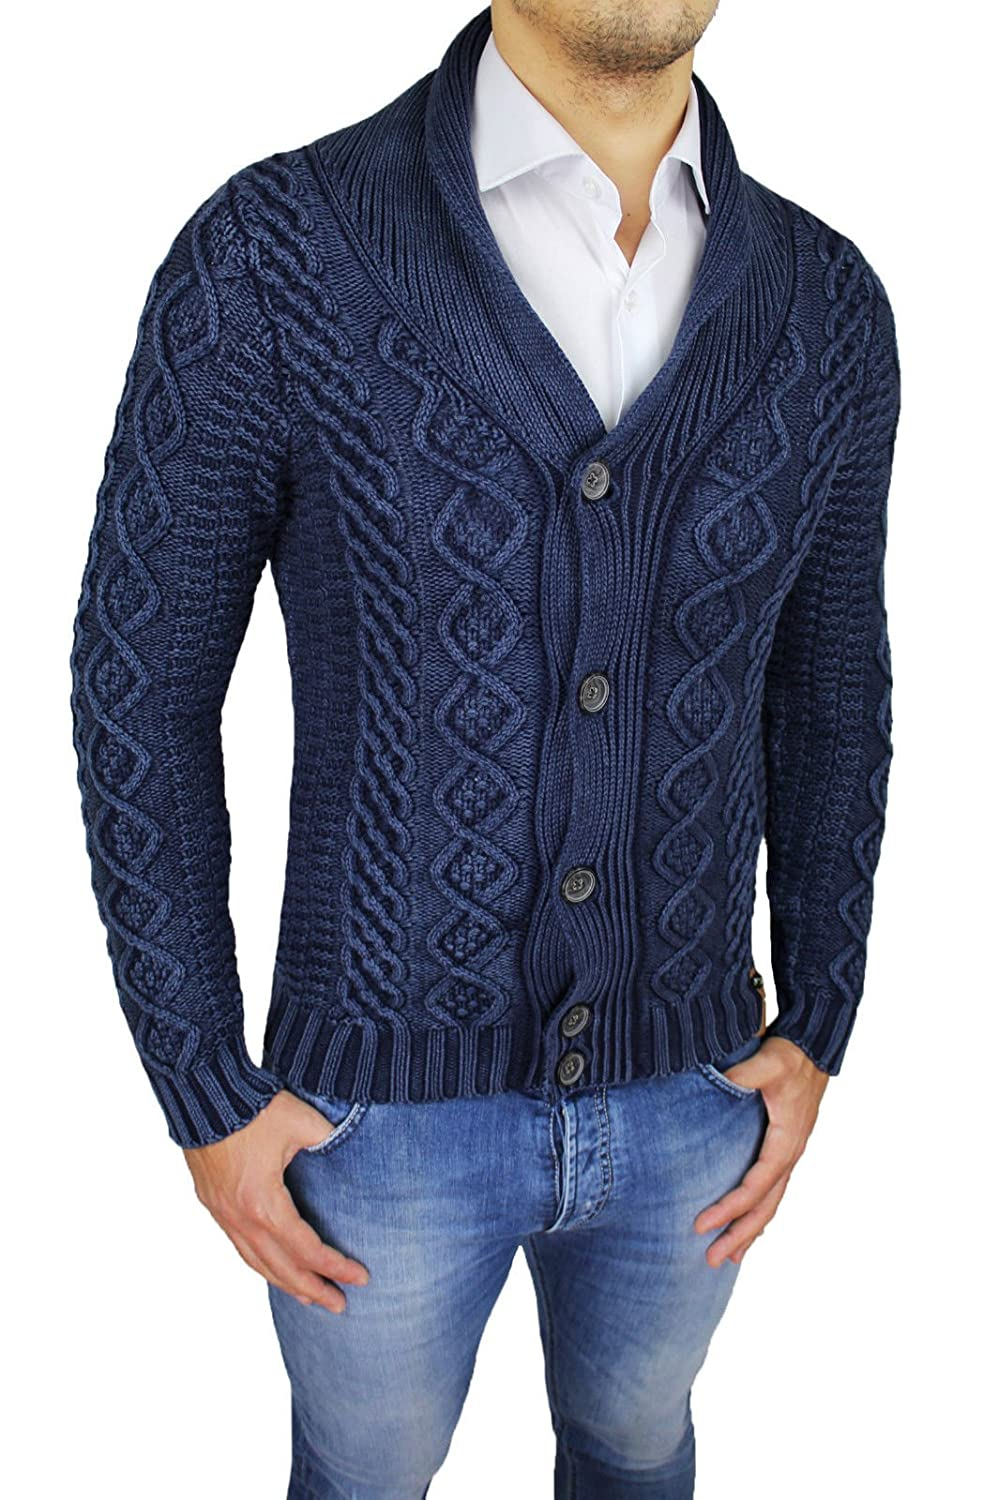 Evoga Men's Cardigan grey grey Large